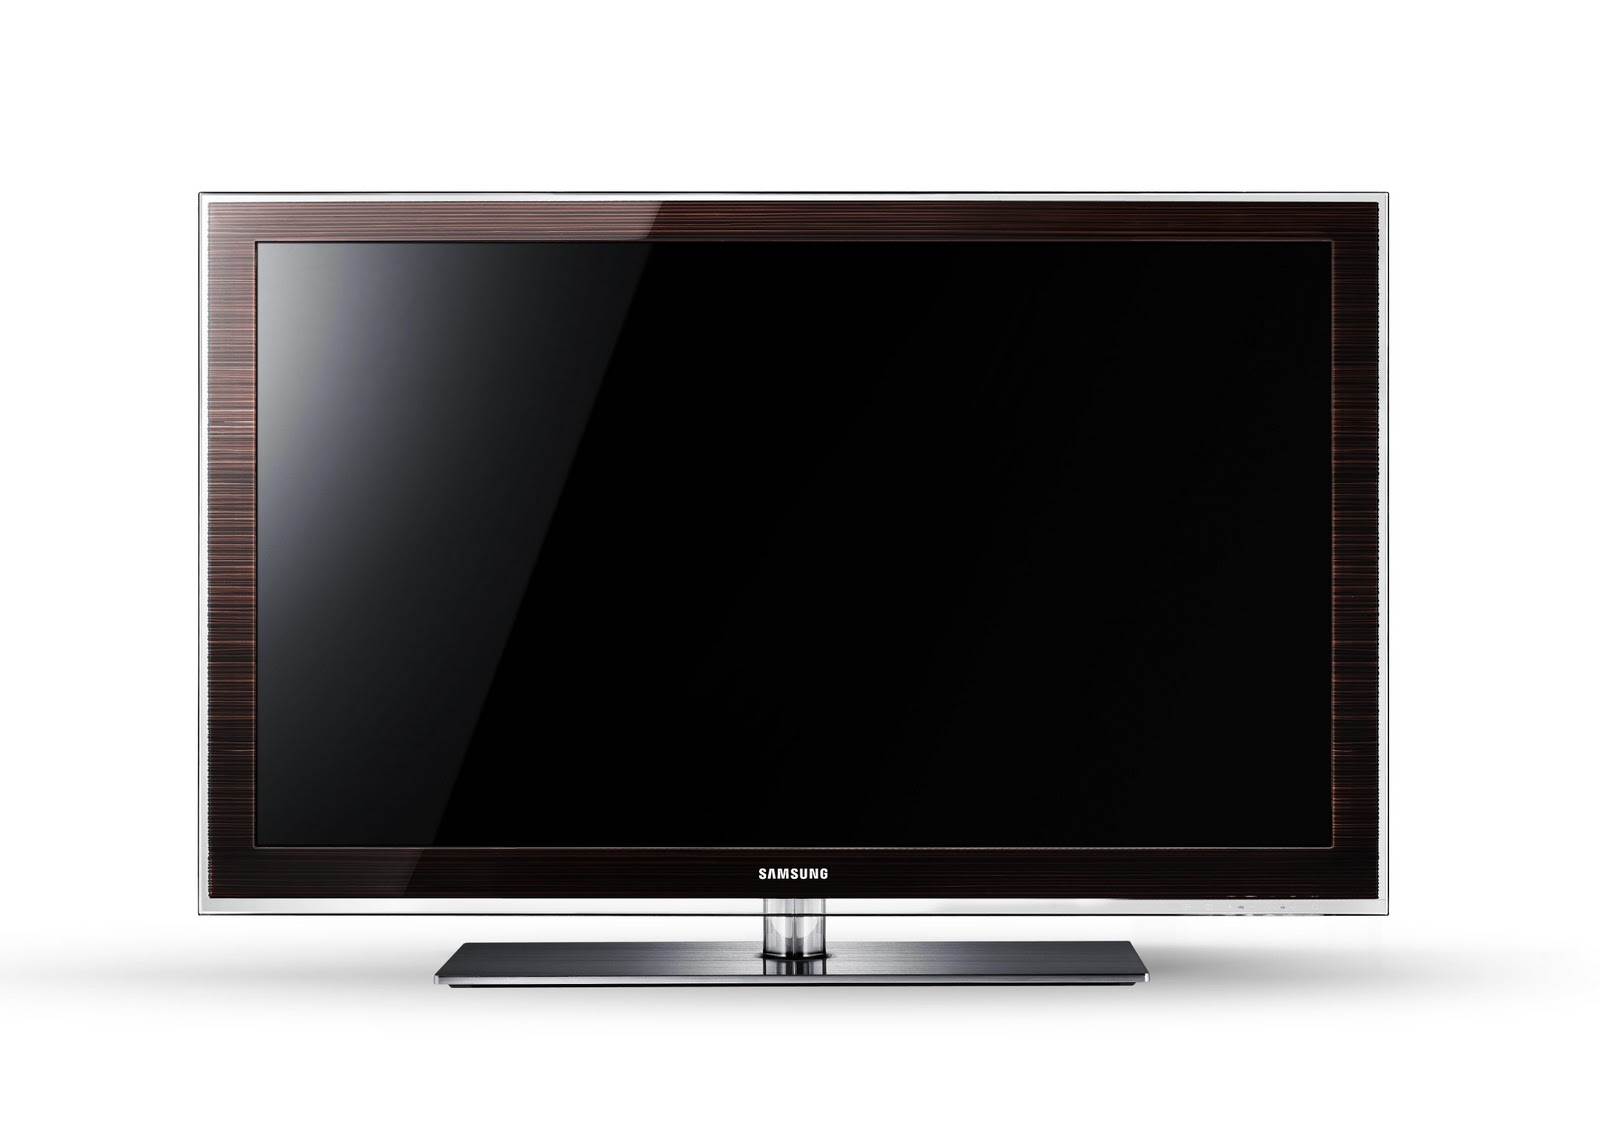 Samsung 3D LED TV HD wallpapers 2012 New Technology Information 2012 1600x1131